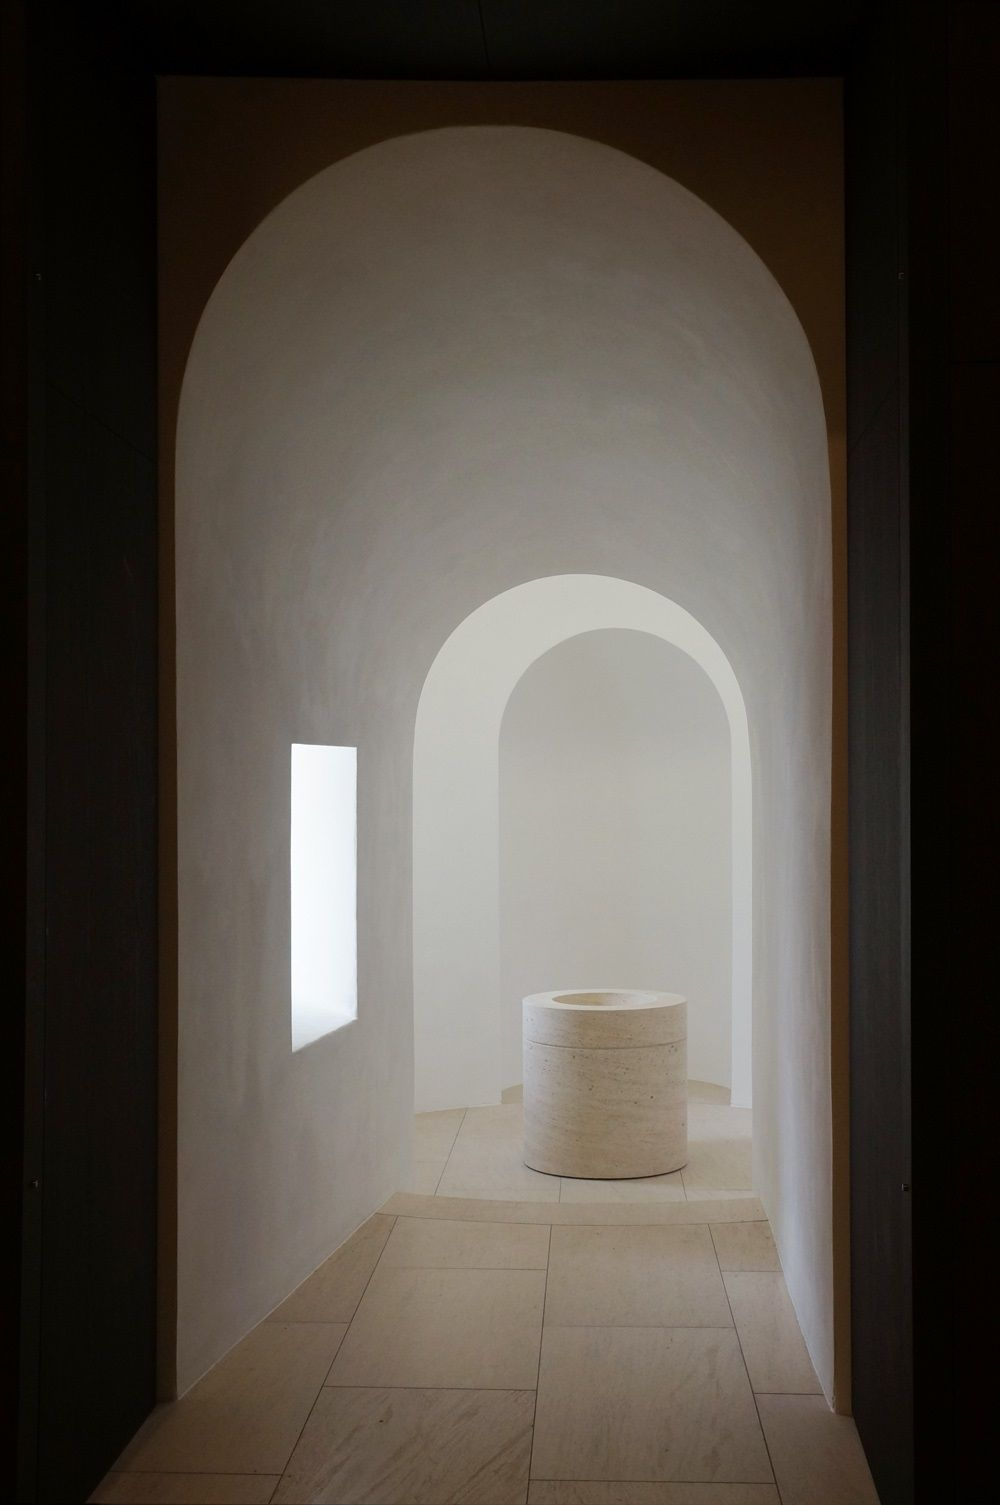 John pawson st moritz church augsburg d w e l l for Interior design augsburg